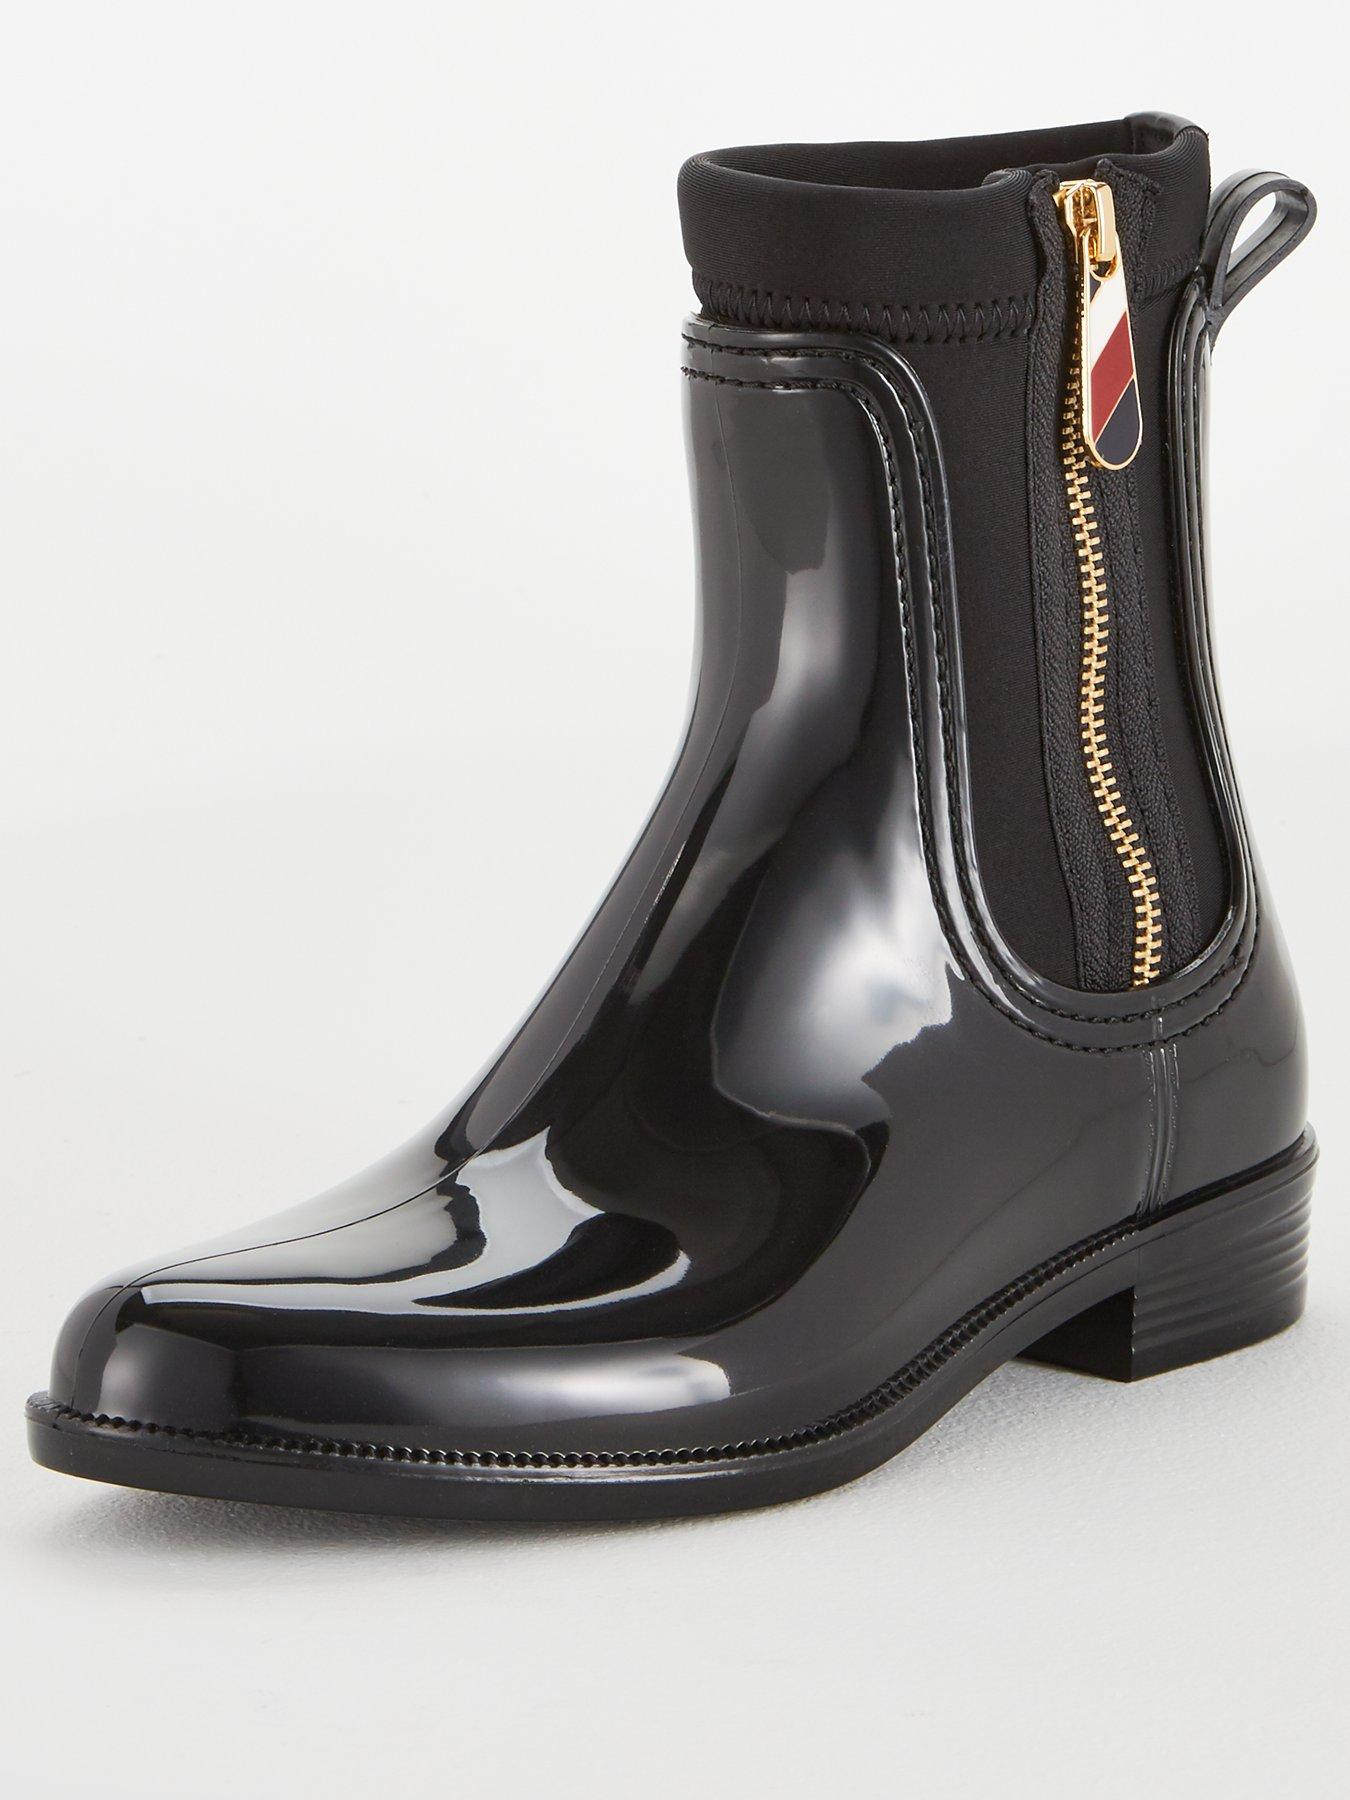 tommy hilfiger gloss ankle rain boots black very co uk  tommy hilfiger gloss ankle rain boots black